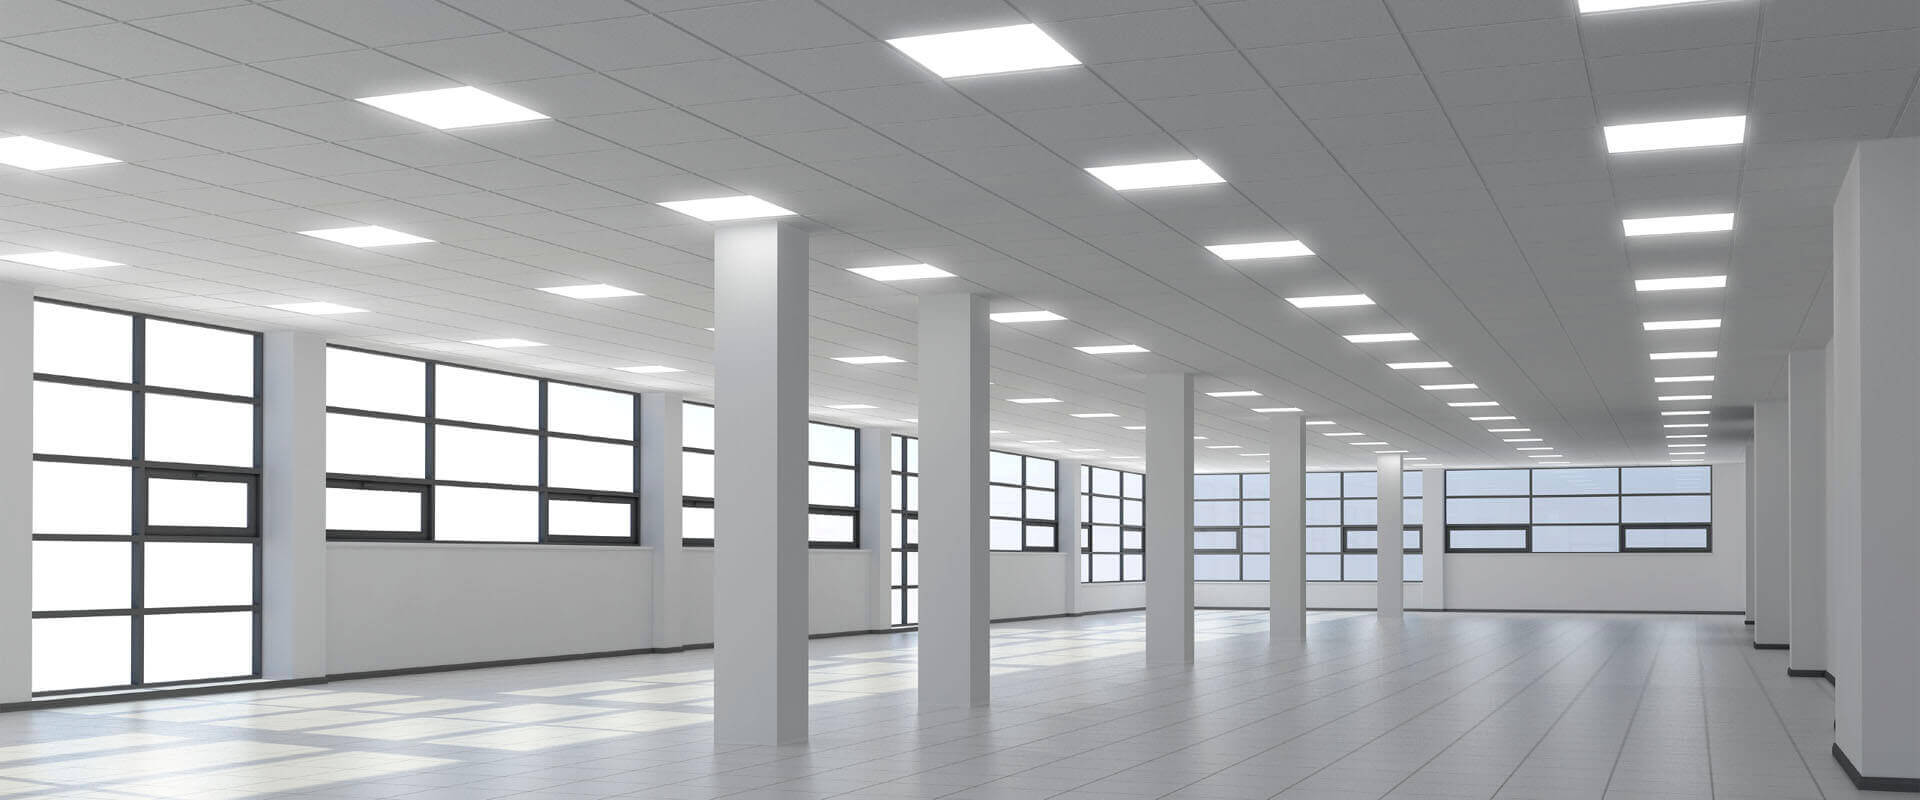 LED lighting services in Brentwood